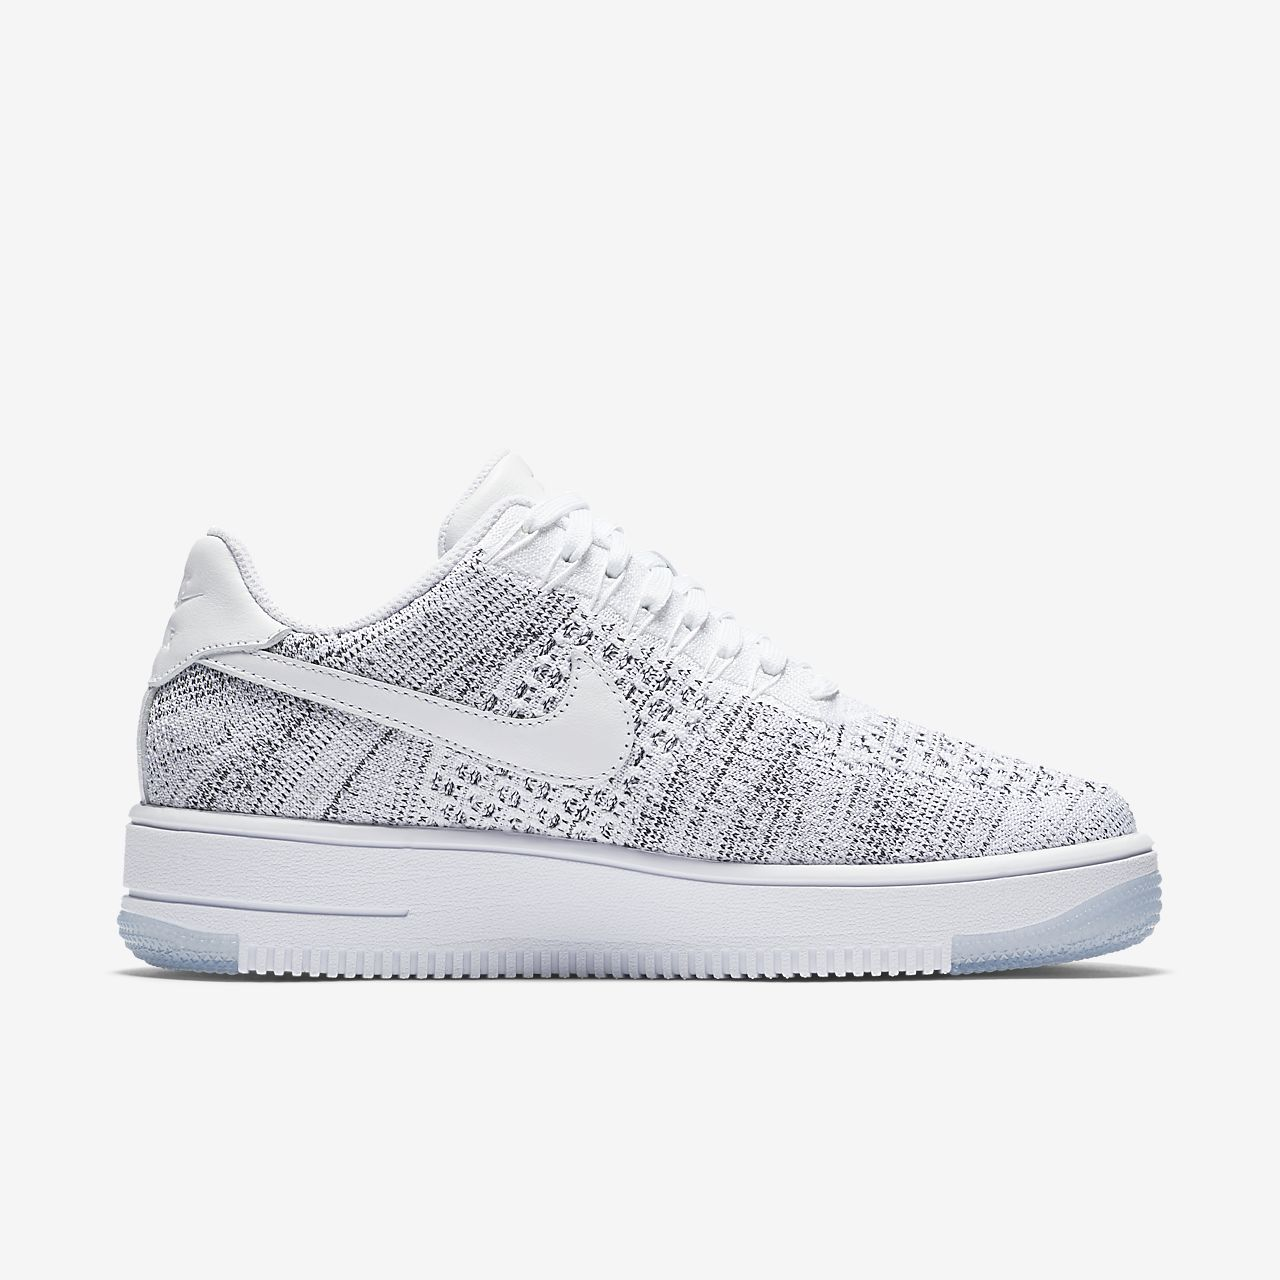 nike air force 1 swoosh change nz